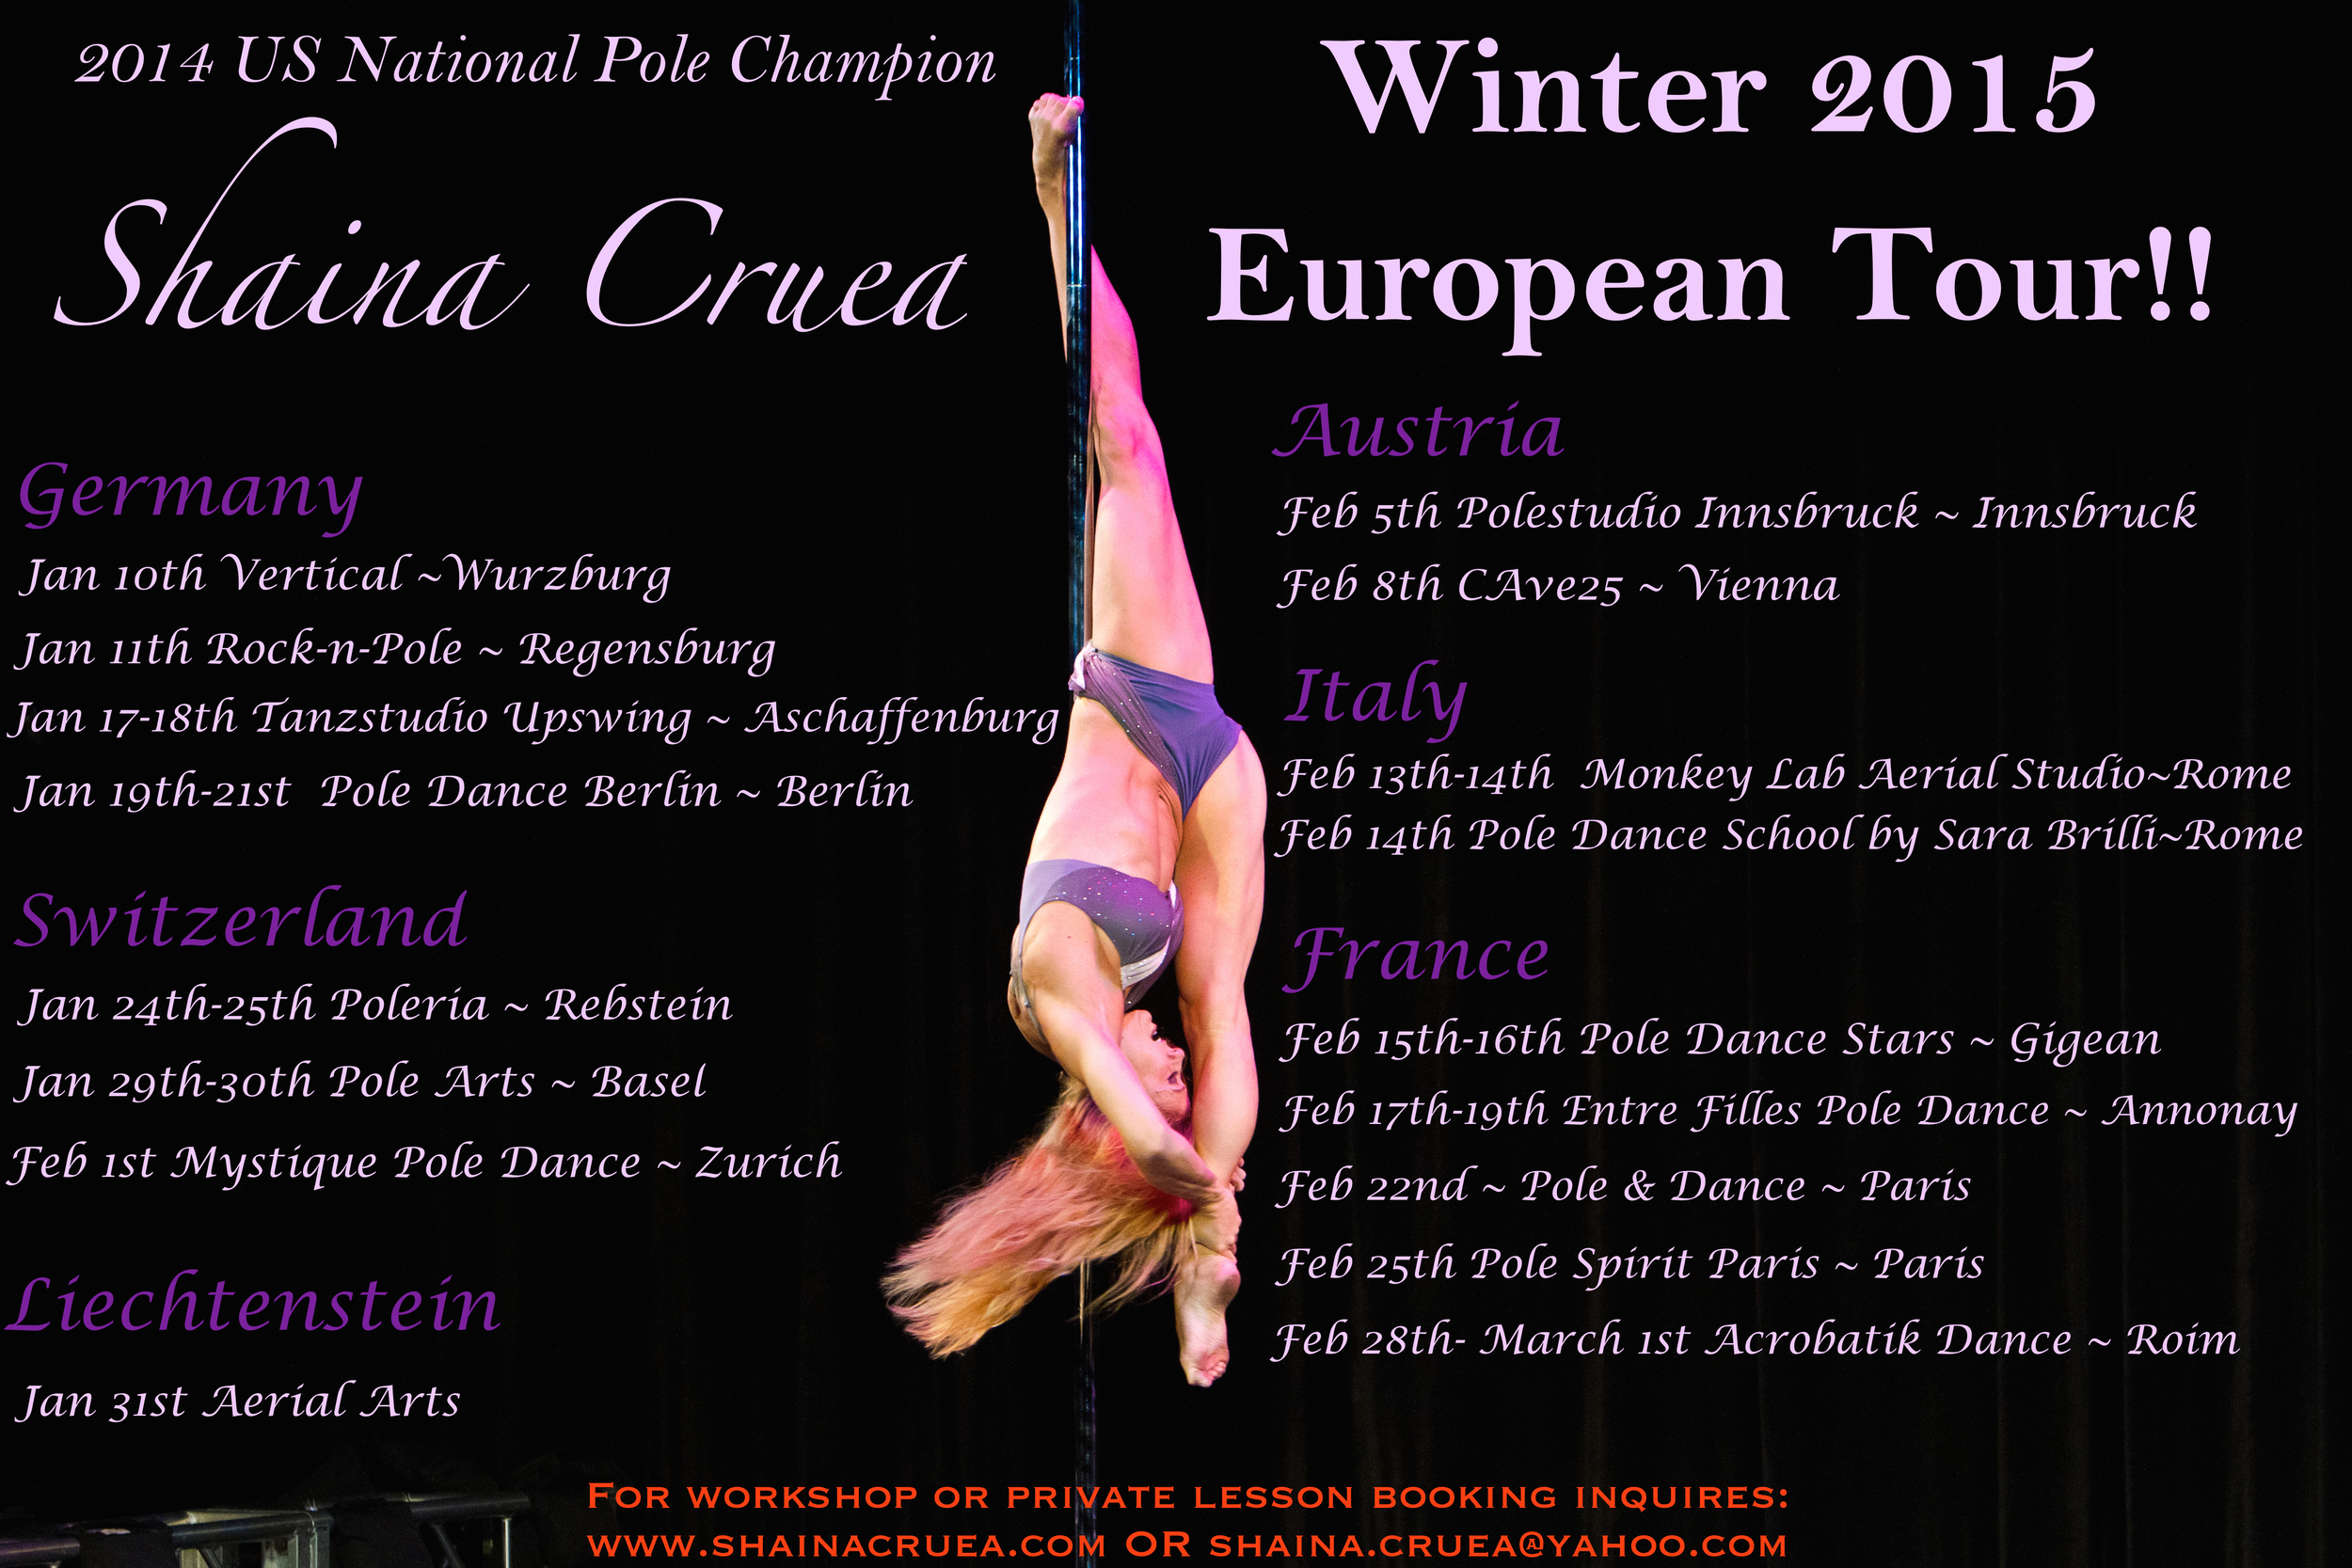 EUROPEAN TOUR FLYER.jpg